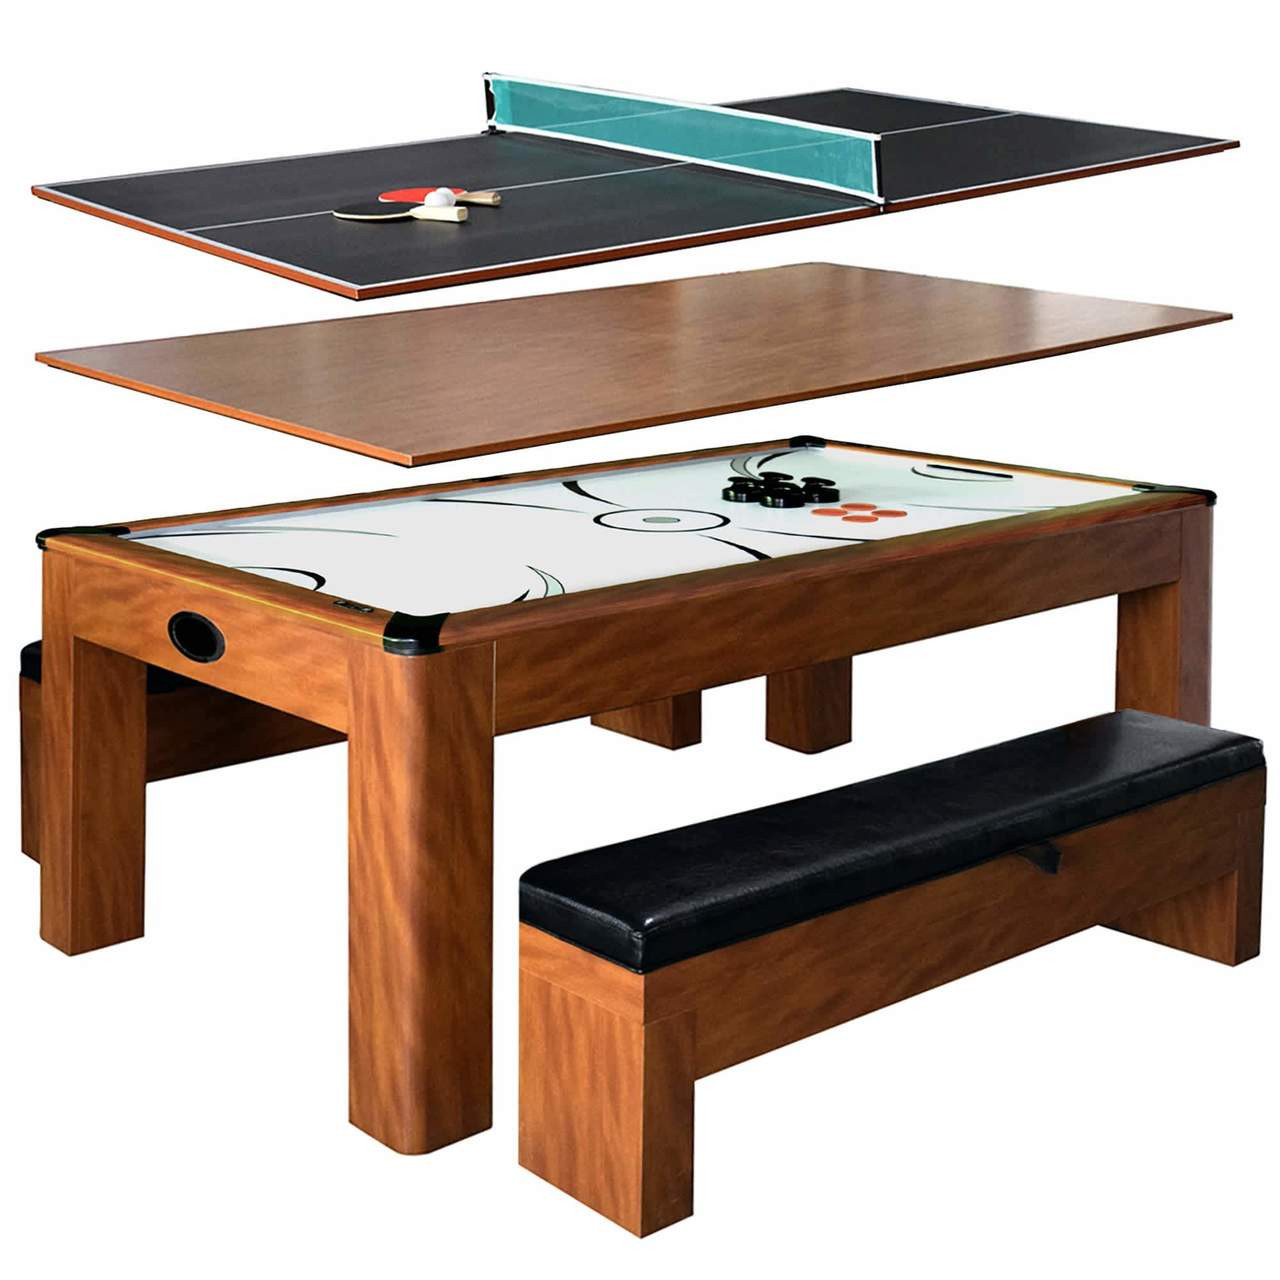 Sherwood 7-ft Air Hockey/Dining Table w Benches/Ping Pong  AH-106  FREE SHIPPING!!